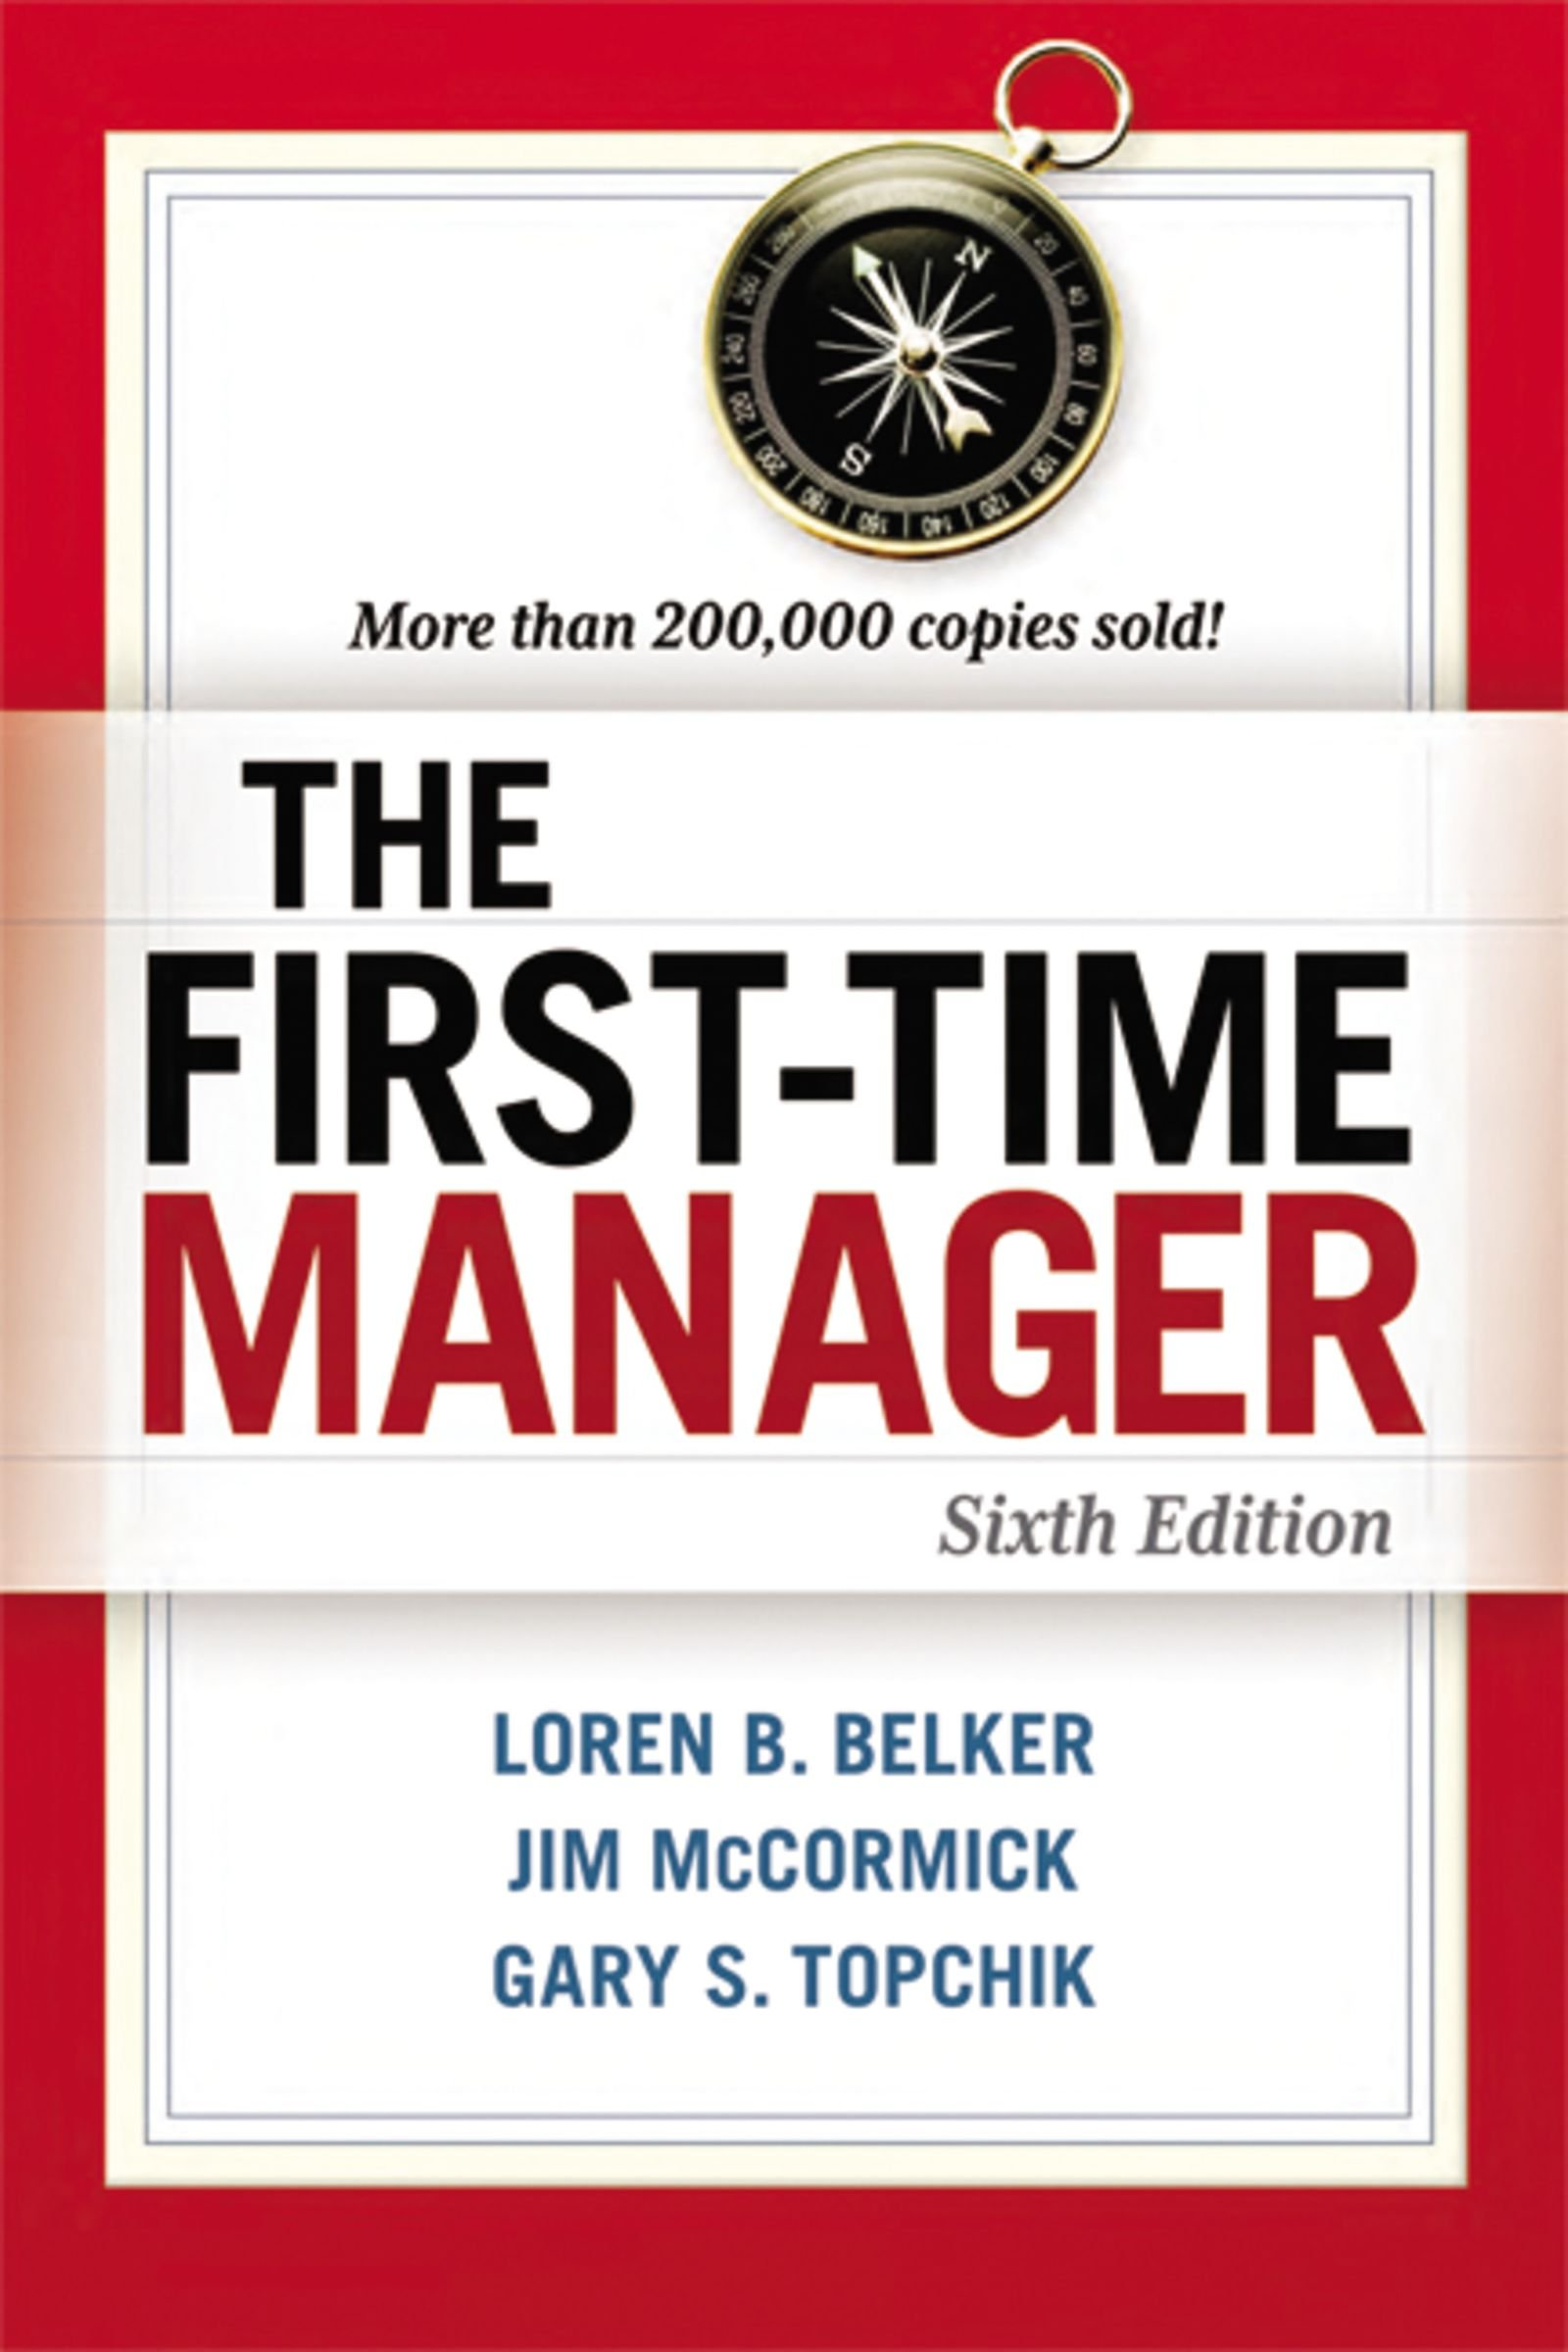 The first time manager loren b belker jim mccormick gary s the first time manager loren b belker jim mccormick gary s topchik 9780814417836 amazon books fandeluxe Images